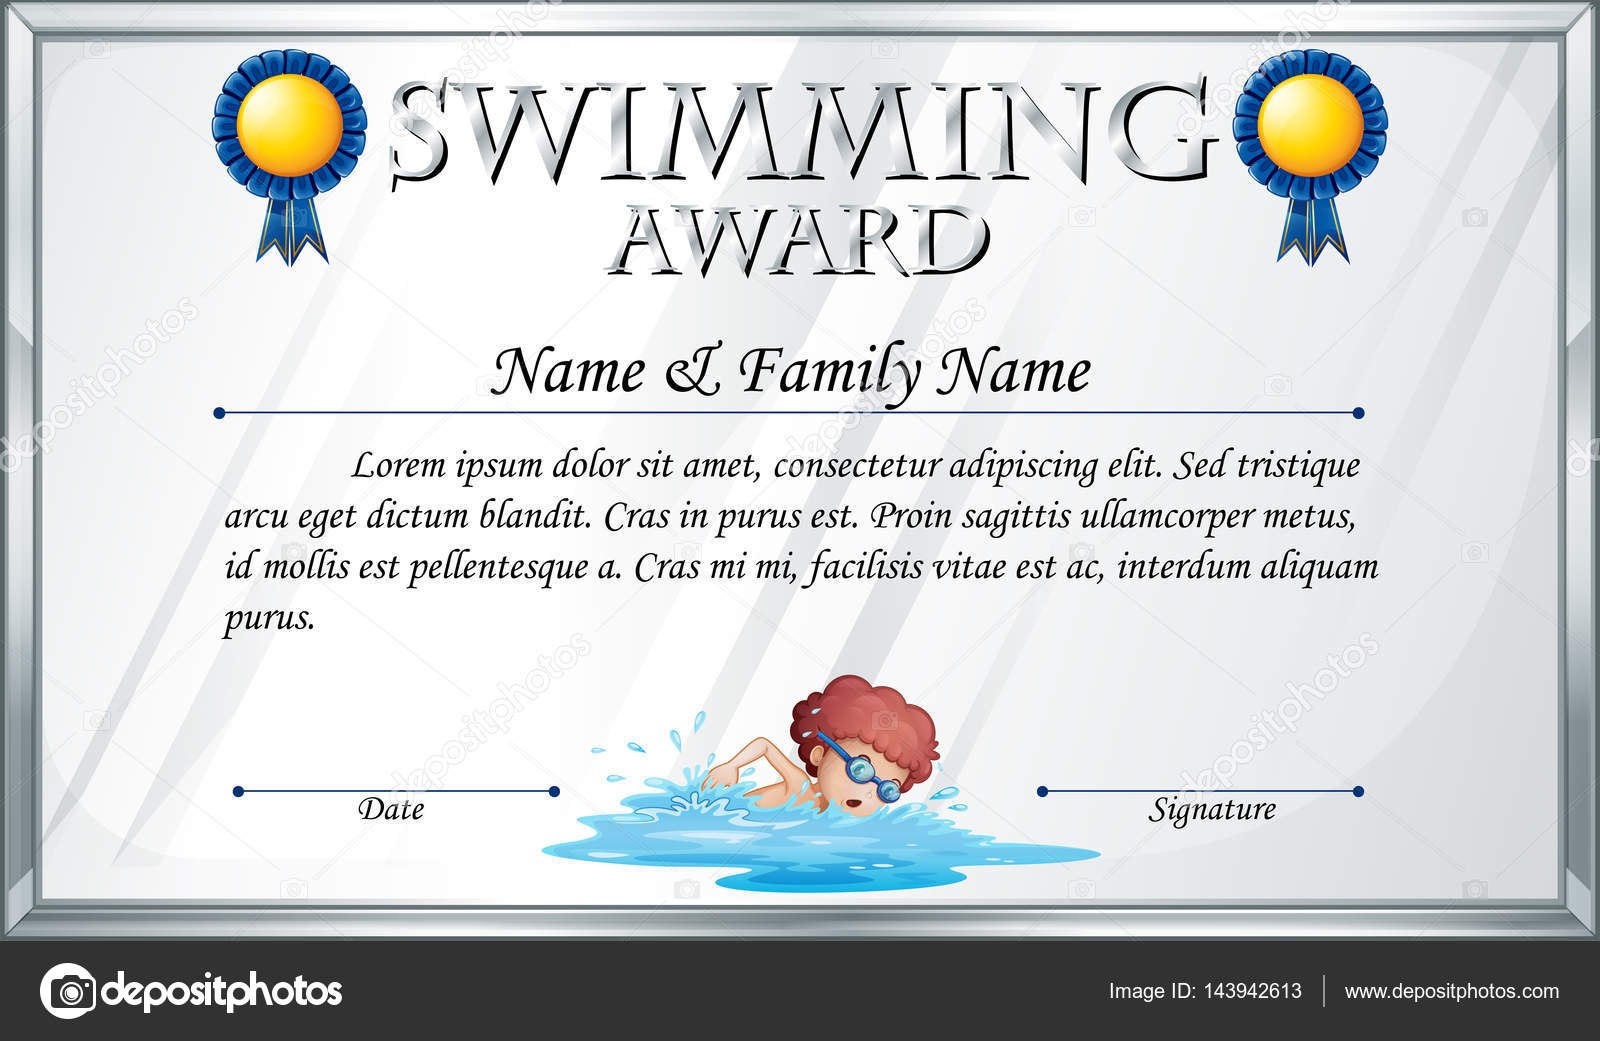 Certificate Template For Swimming Award — Stock Vector Throughout Swimming Award Certificate Template